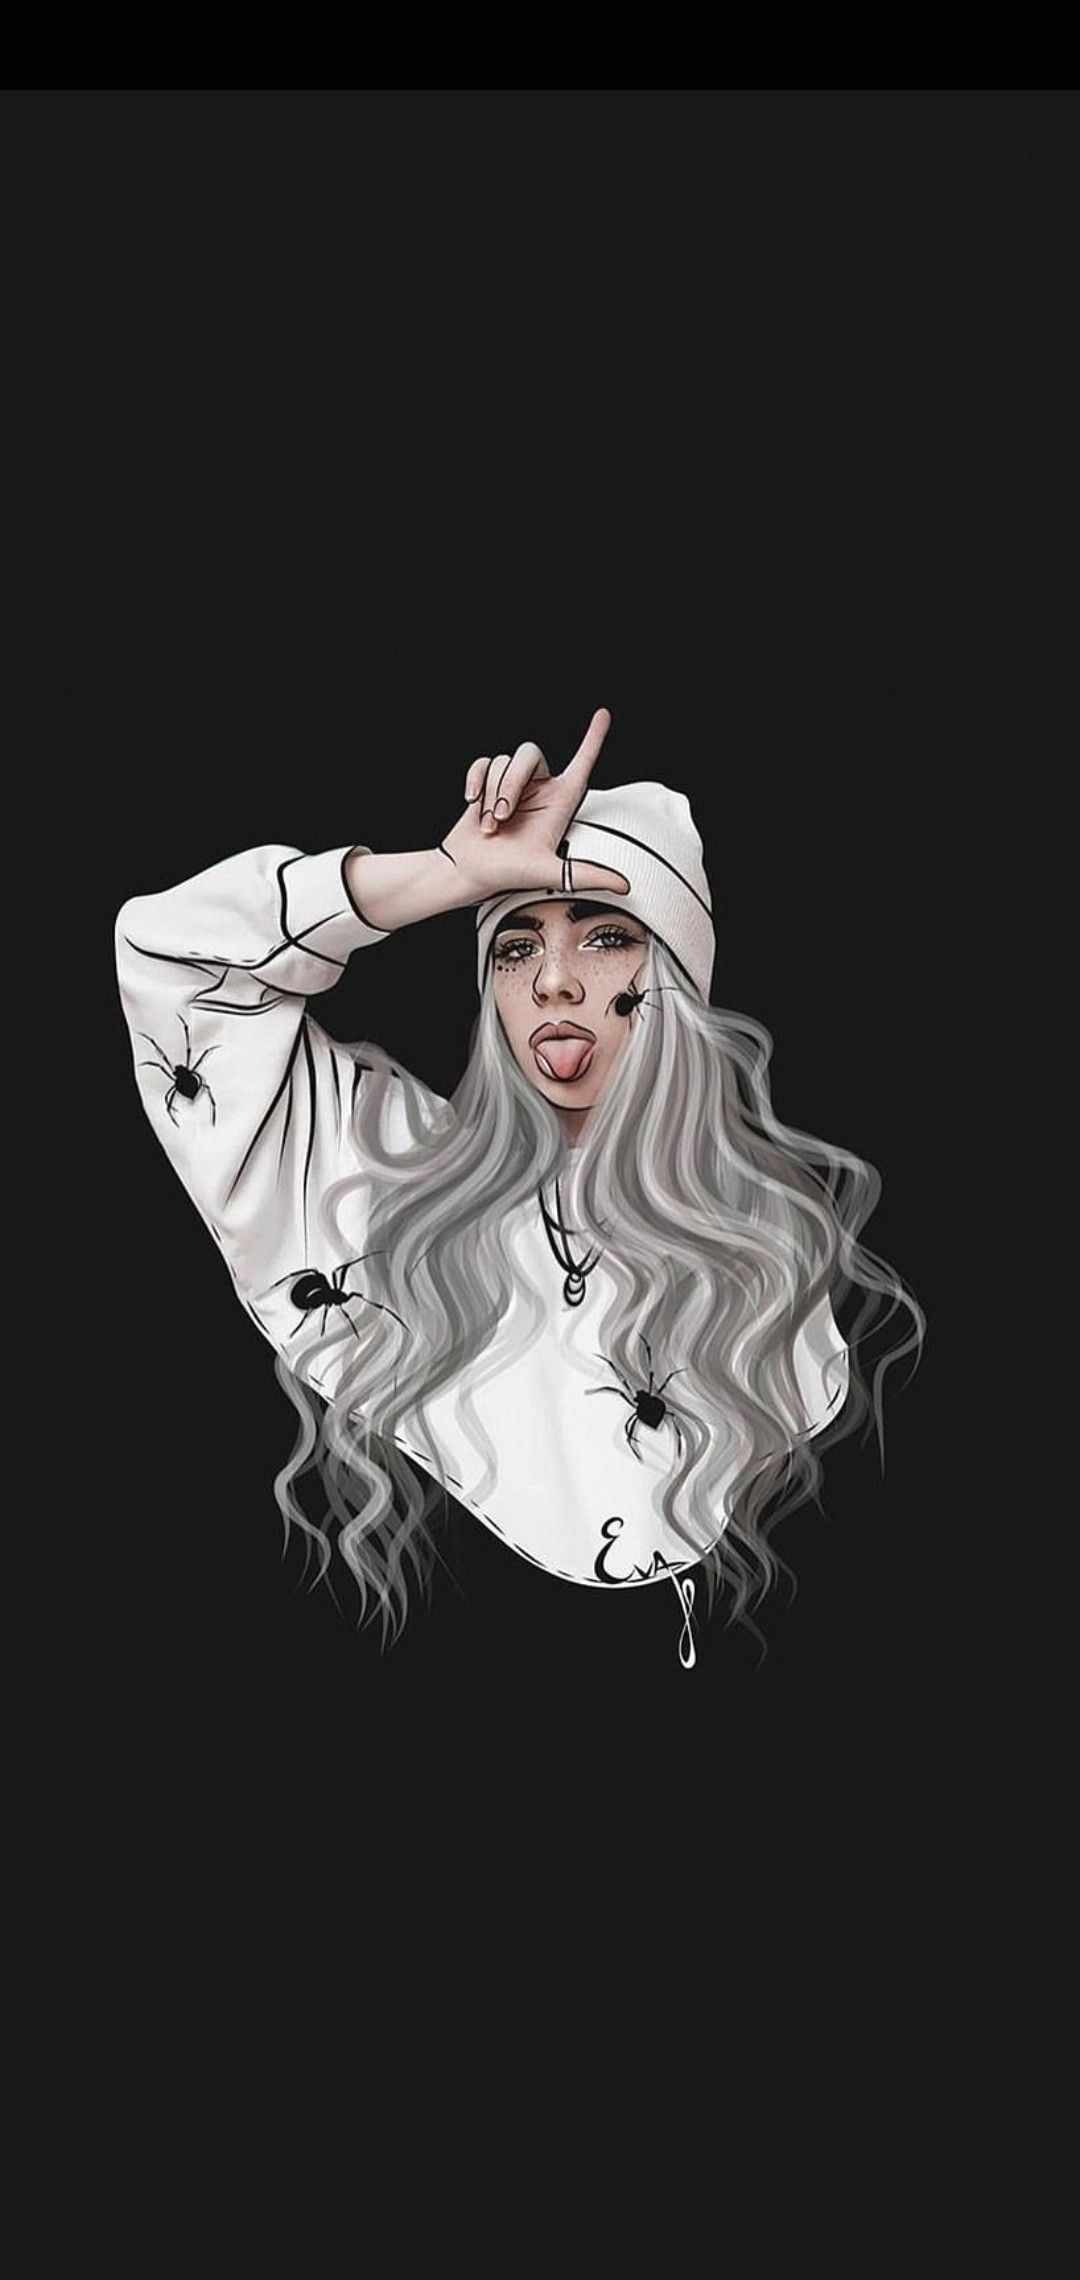 Trendy Billie Eilish Aesthetic Wallpaper Dark 59 Ideas Billie Eilish Billie Aesthetic Wallpapers